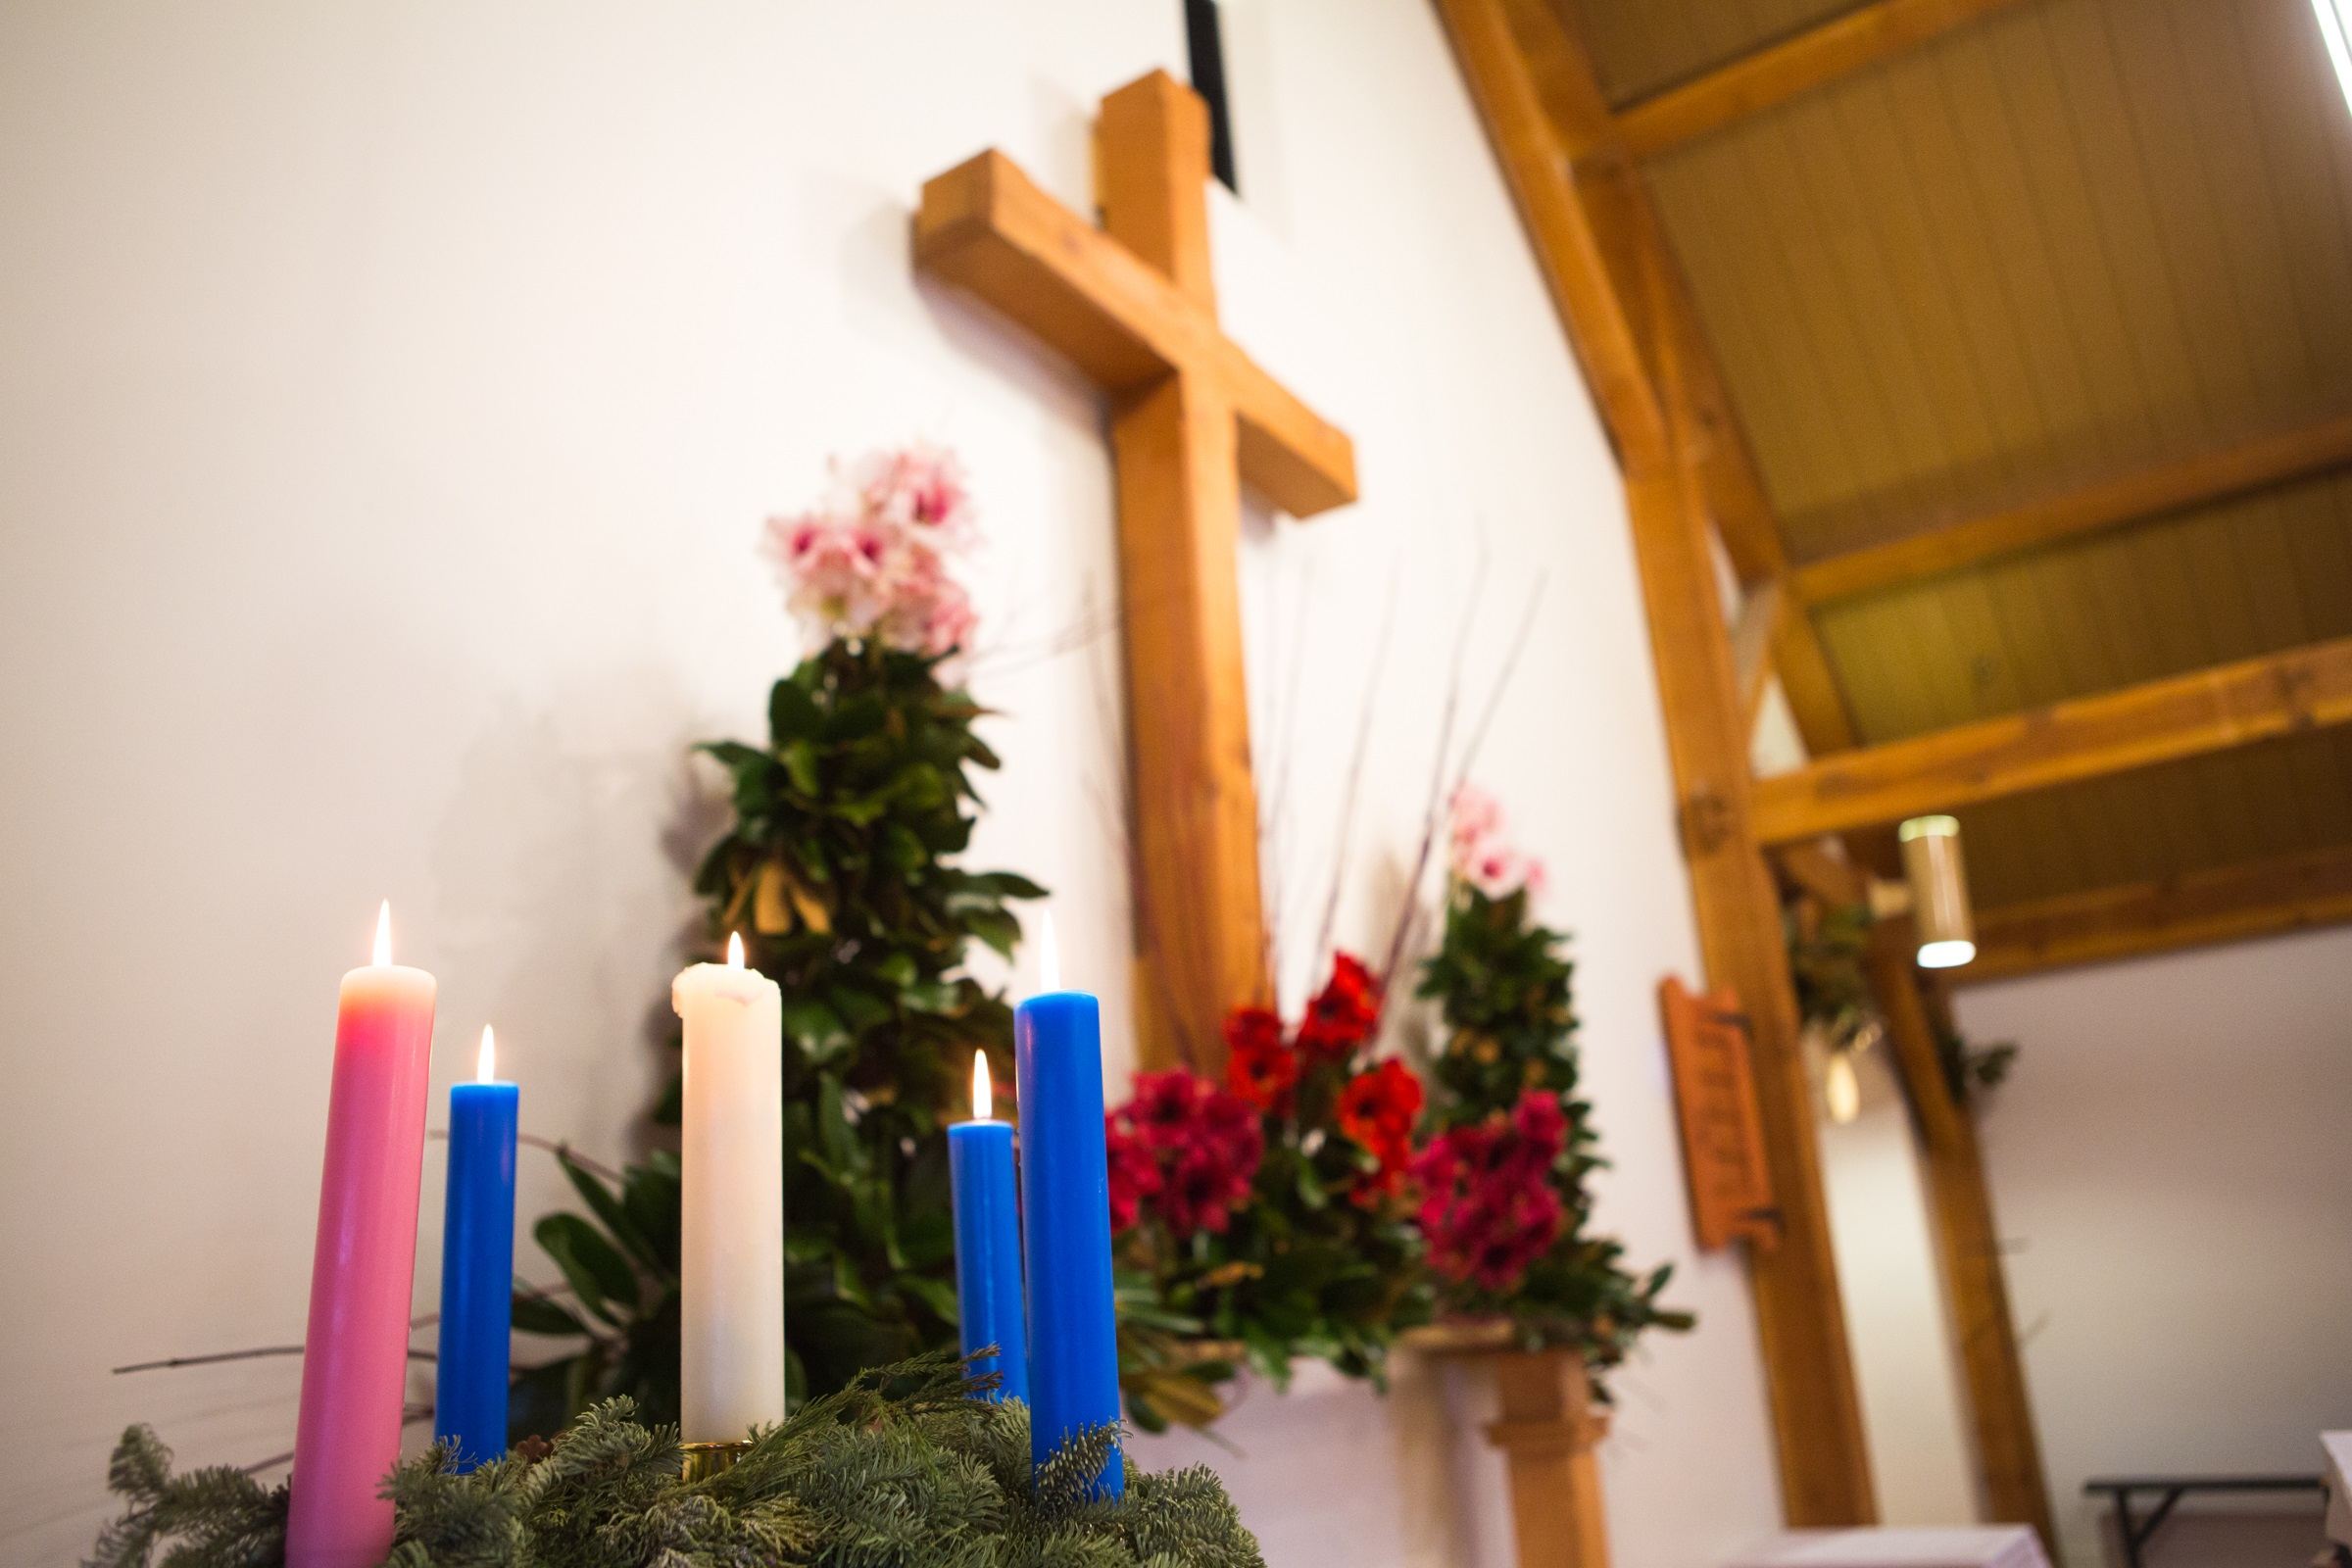 The First Sunday of Advent – The Rev. Abigail Crozier Nestlehutt